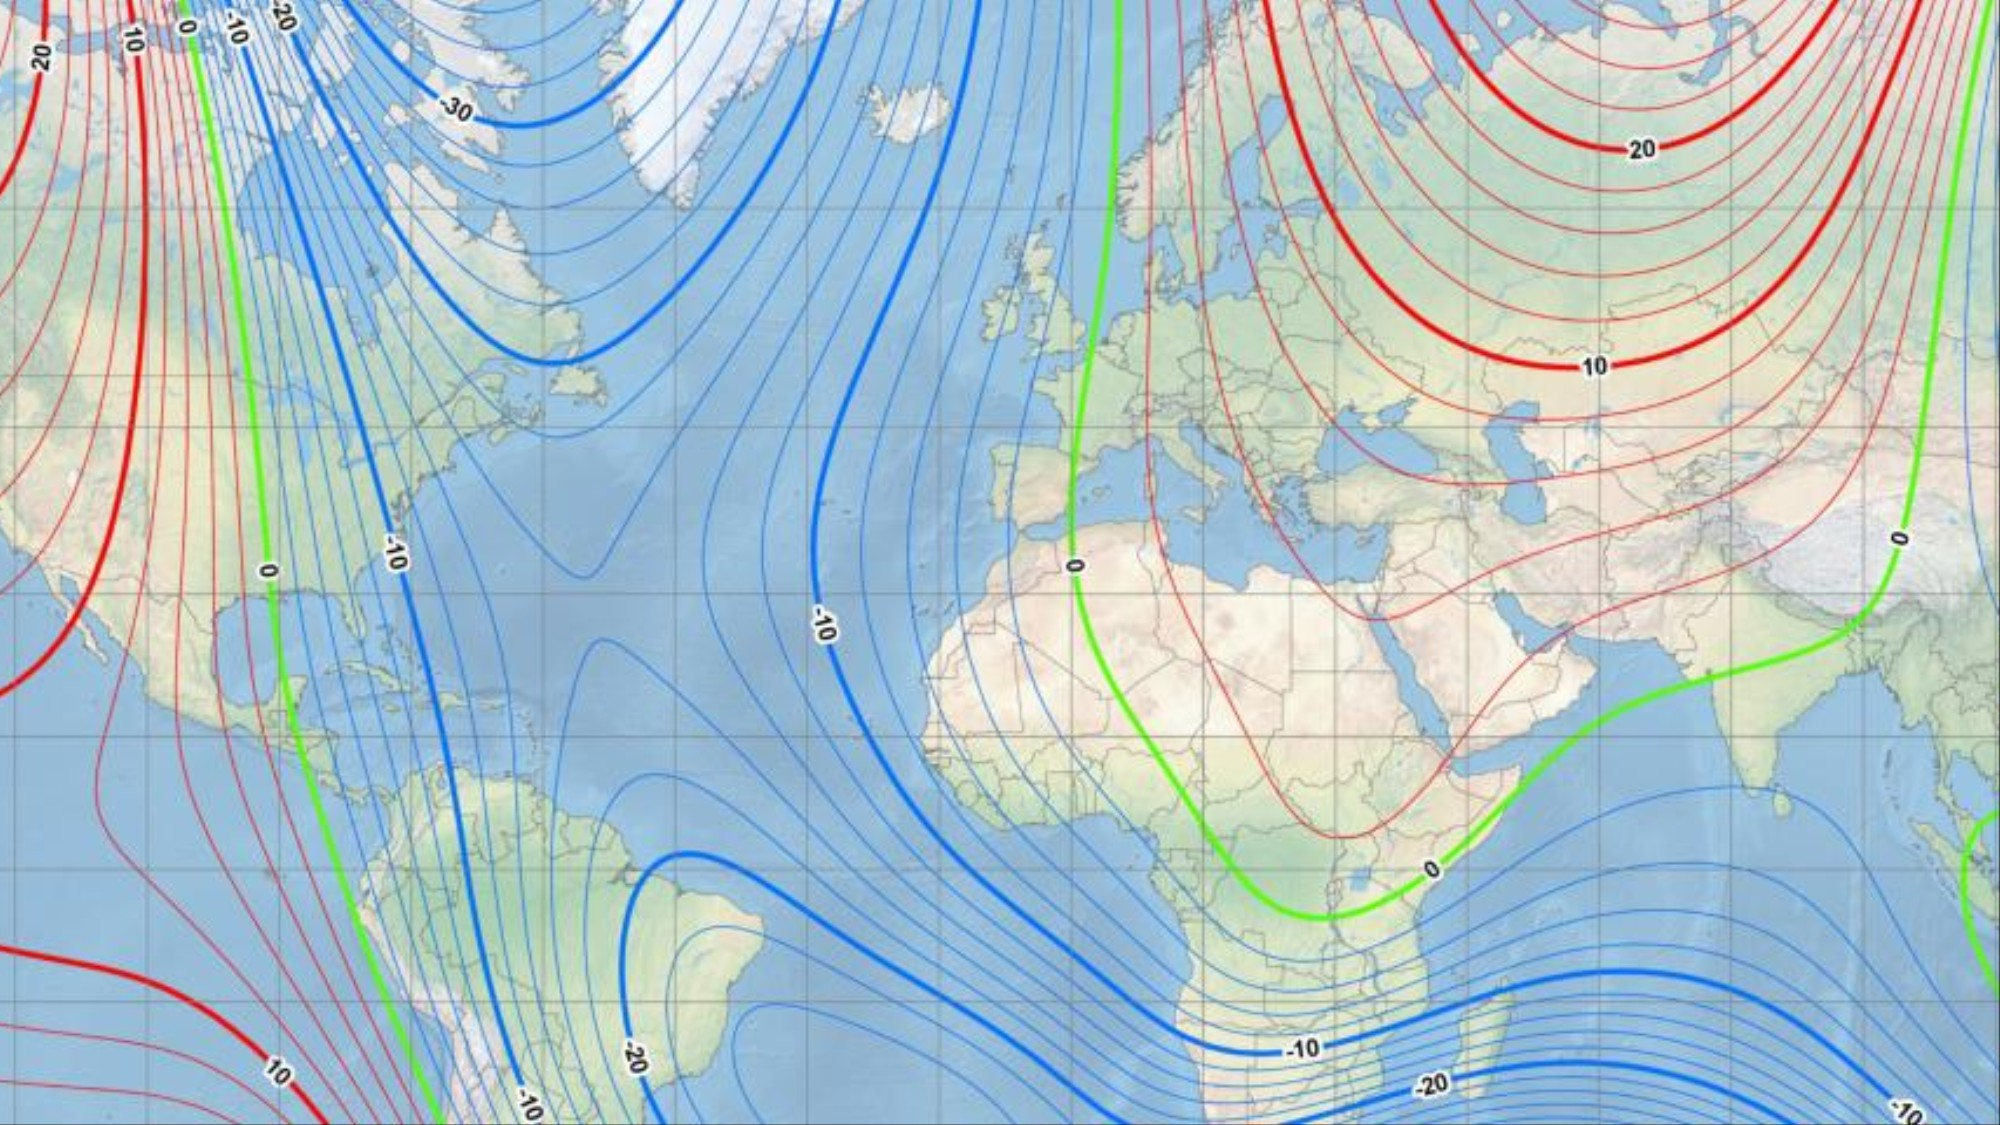 What Happens if the Magnetic North Pole Keeps Rushing Toward Siberia on map of alaska, map of scotland, map of north america, map of greenland, map of the world, map of arctic circle, map of the oceans, map of canada, map of the lake baikal, map of africa, map of the united states, map of england, map of the two rivers, map of the great lakes, map of eastern north carolina, map of turkey, map of antarctica, map of the philadelphia, map of another country,